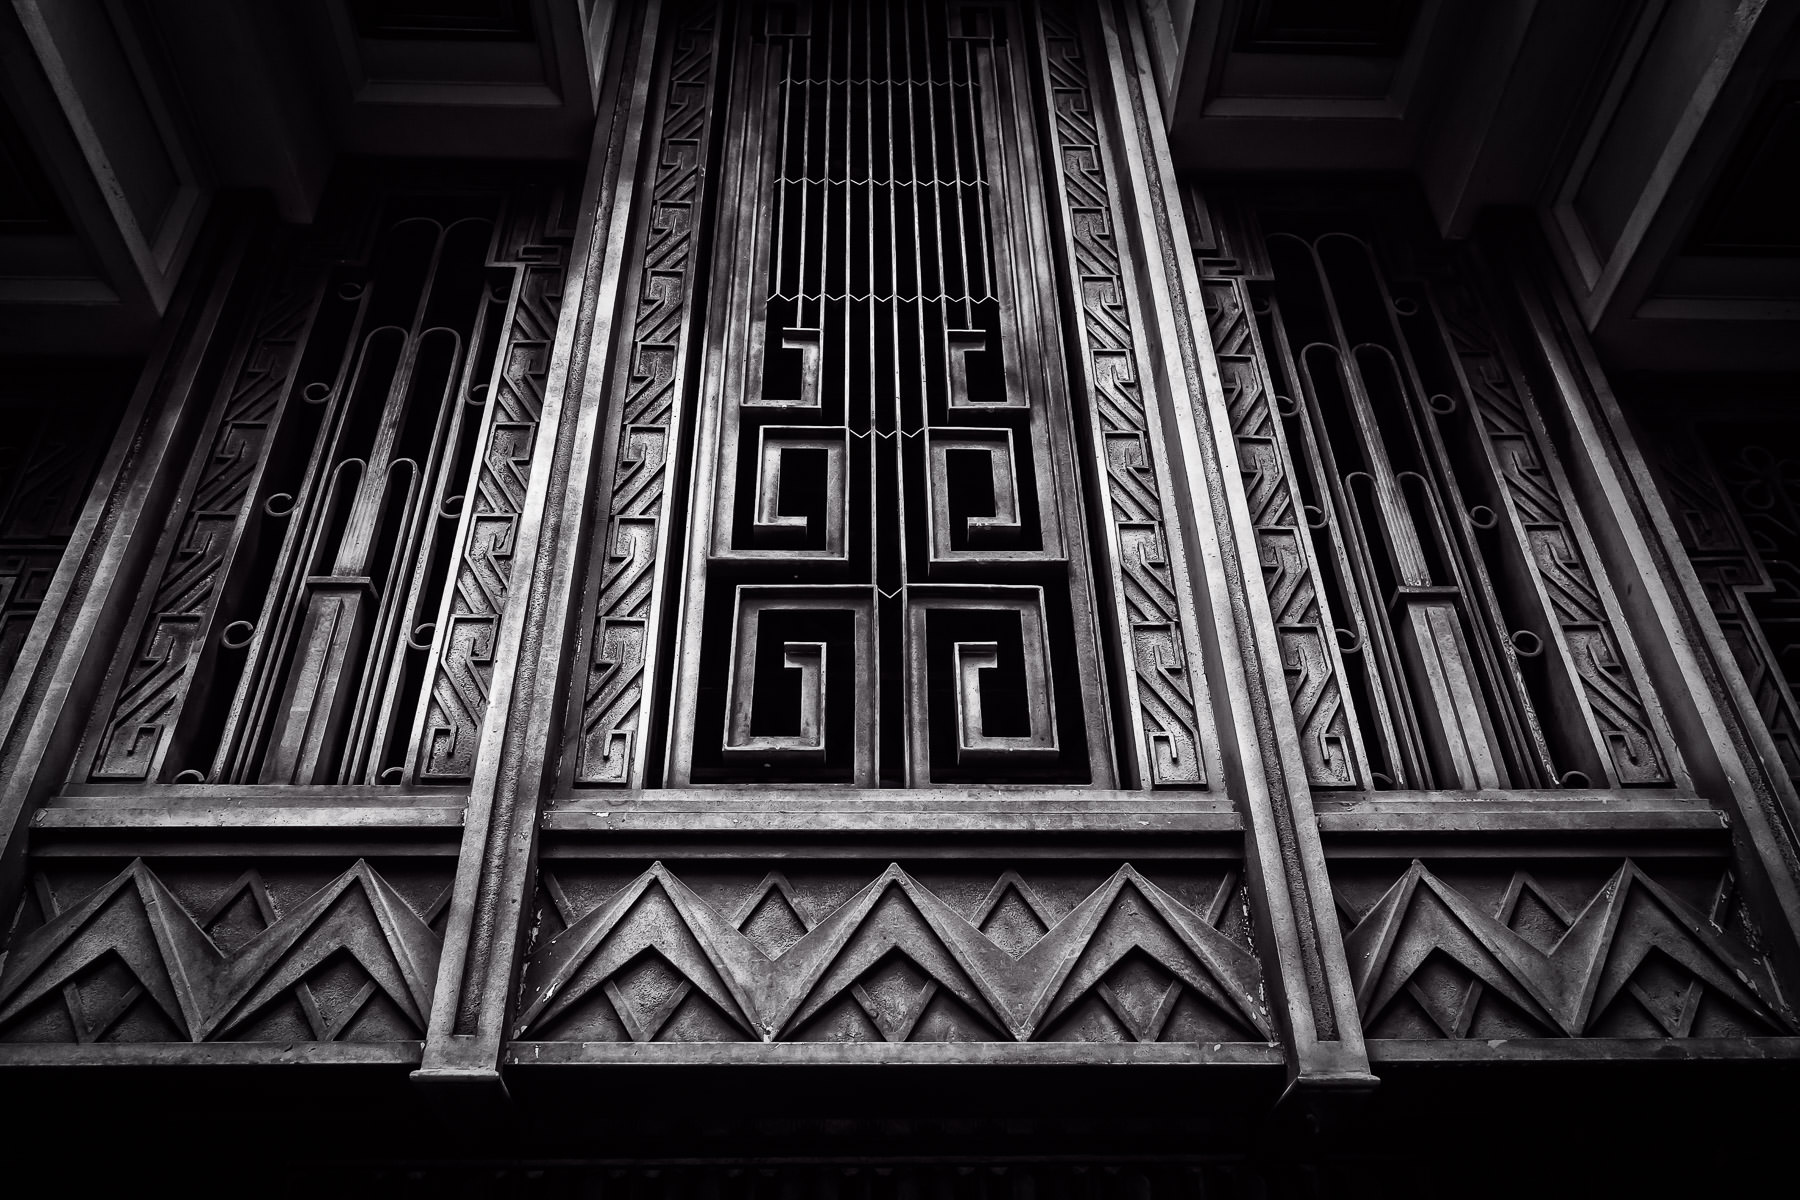 Architectural detail of Fort Worth, Texas' Sinclair Building, built in 1930 and once the headquarters of the Sinclair-Prairie Oil Company.